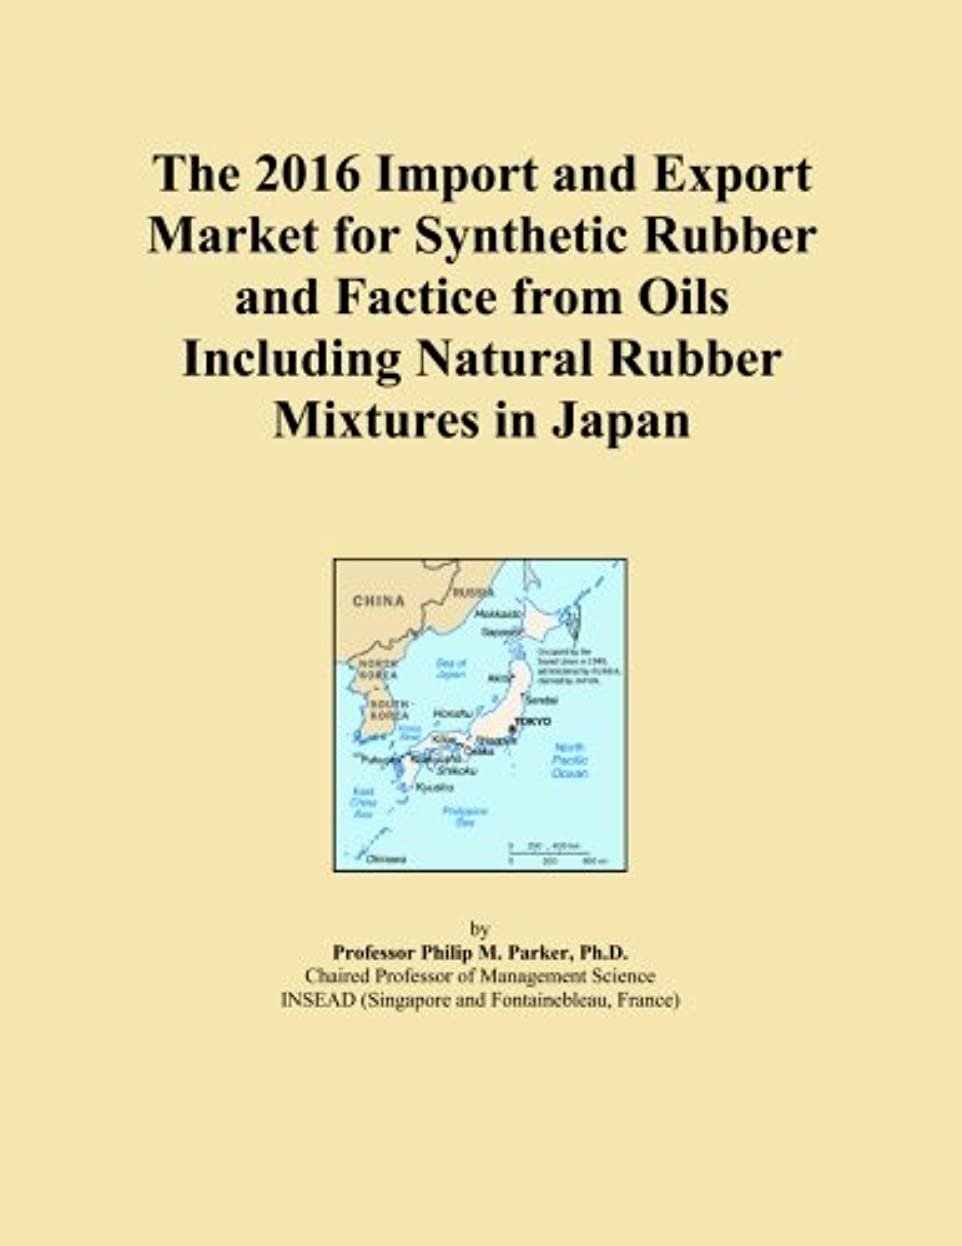 The 2016 Import and Export Market for Synthetic Rubber and Factice from Oils Including Natural Rubber Mixtures in Japan